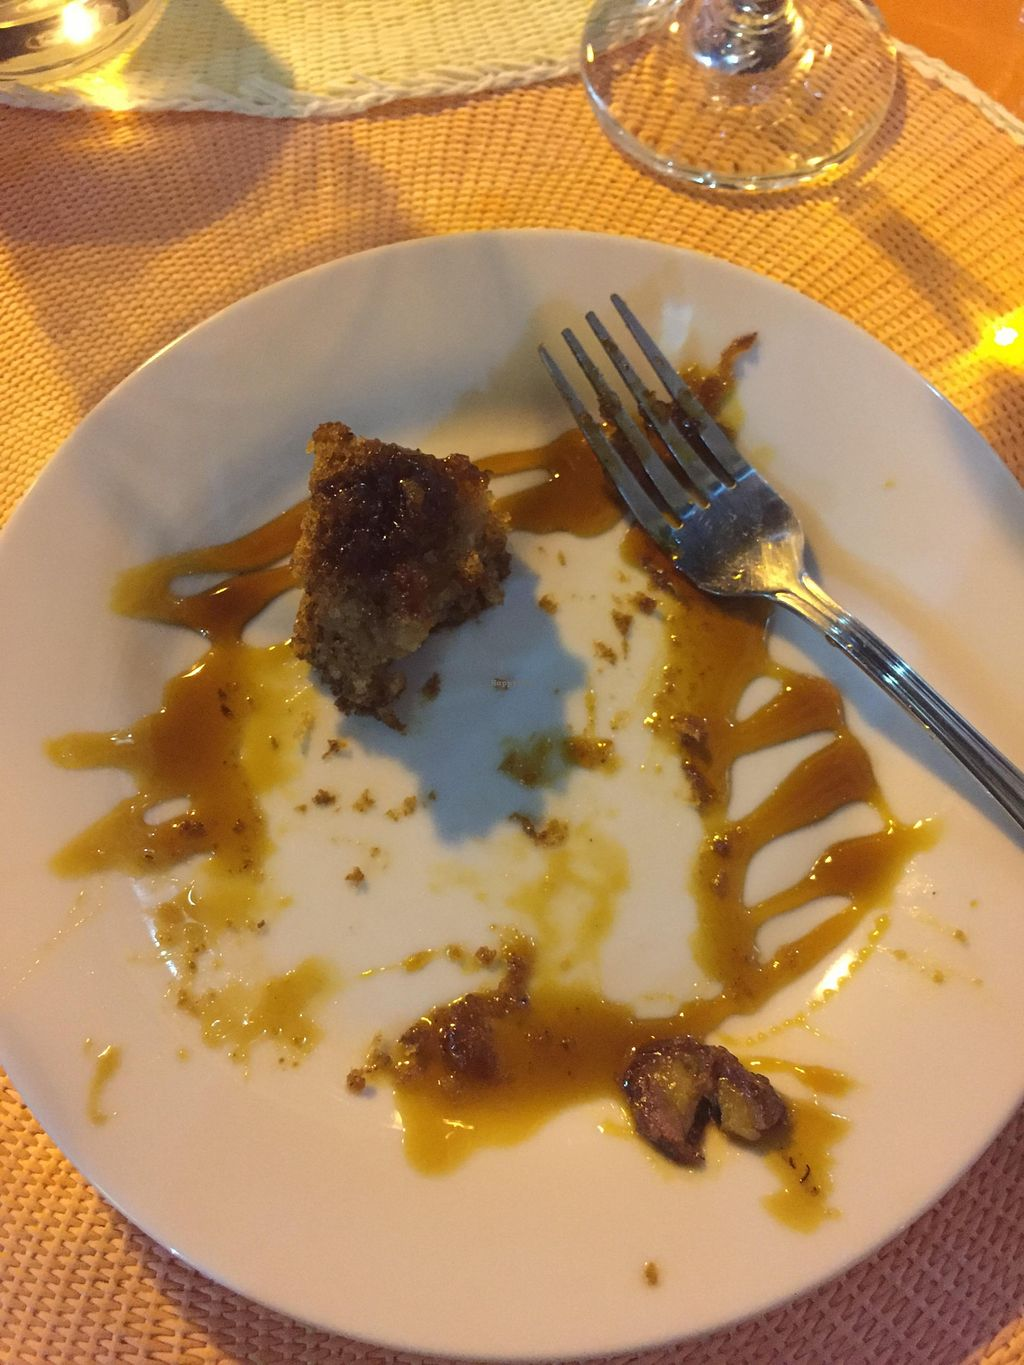 """Photo of CLOSED: Didi Cafe  by <a href=""""/members/profile/wooly"""">wooly</a> <br/>All that remains of the delicious vegan Banana-Coconut cake once my 1.5 year old daughter got to it <br/> August 6, 2015  - <a href='/contact/abuse/image/61120/112536'>Report</a>"""